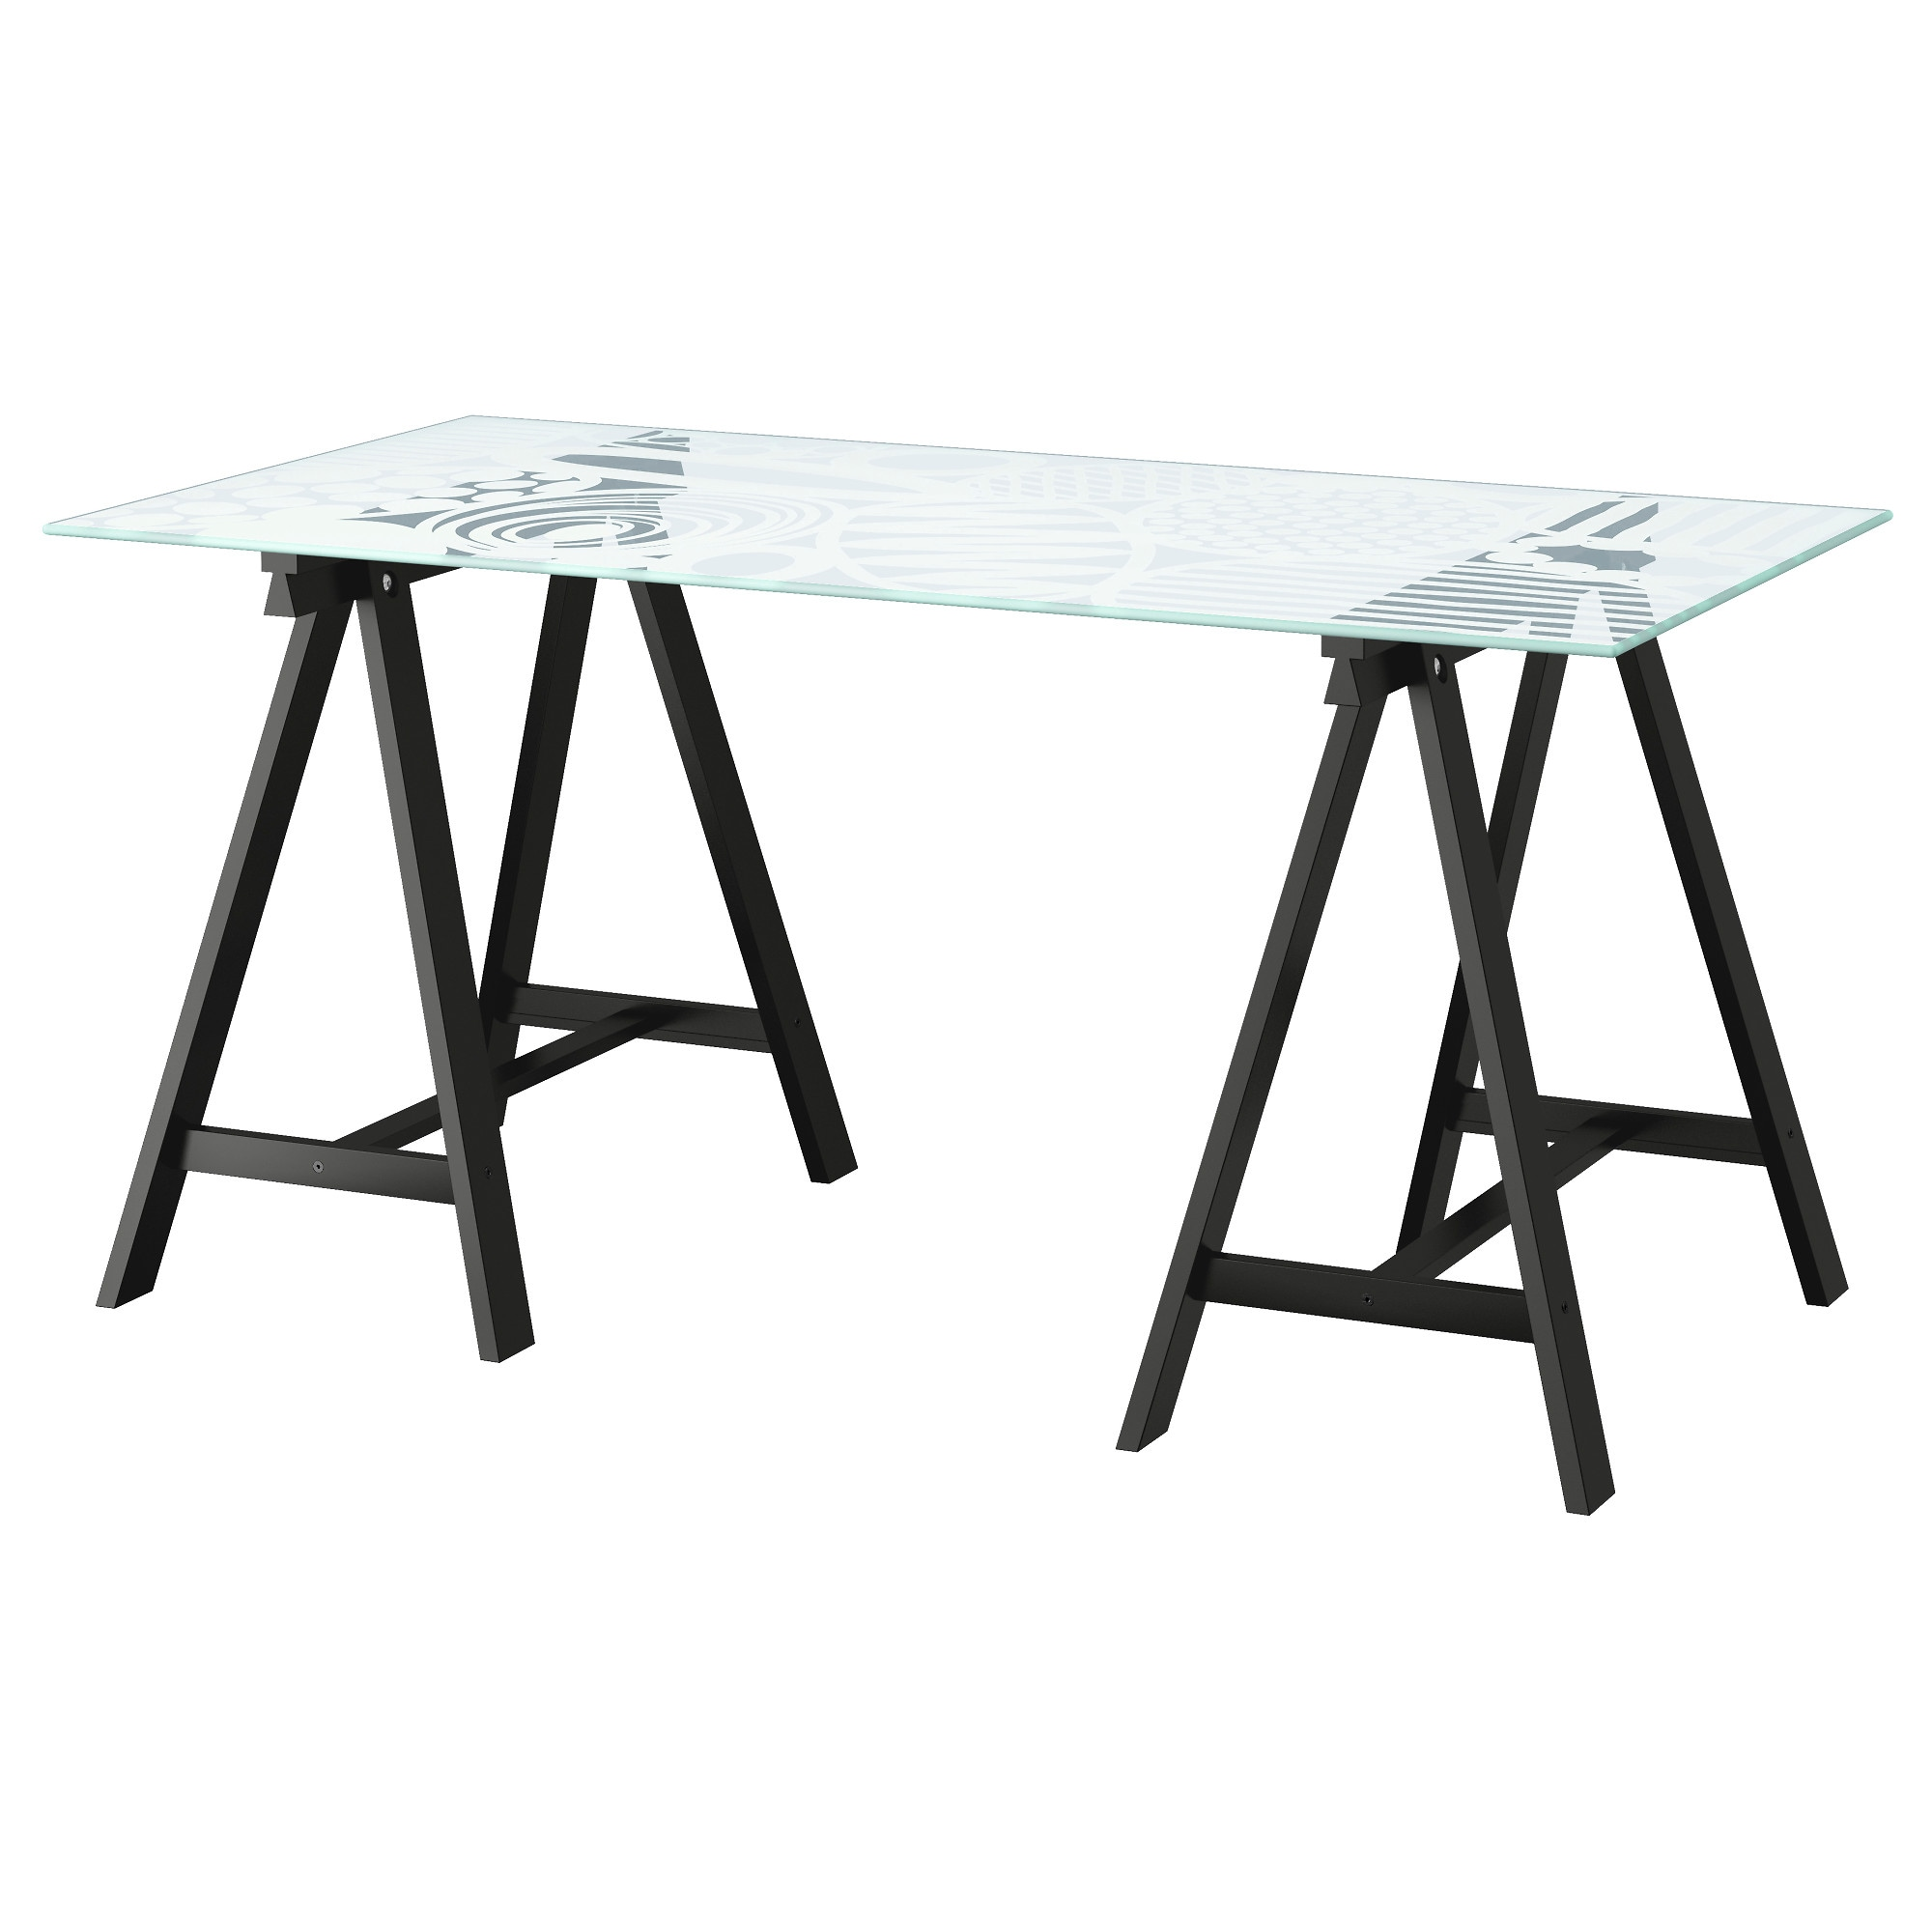 Ikea glass table desk - Glasholm Oddvald Table Glass Egg Pattern Black Length 58 1 4